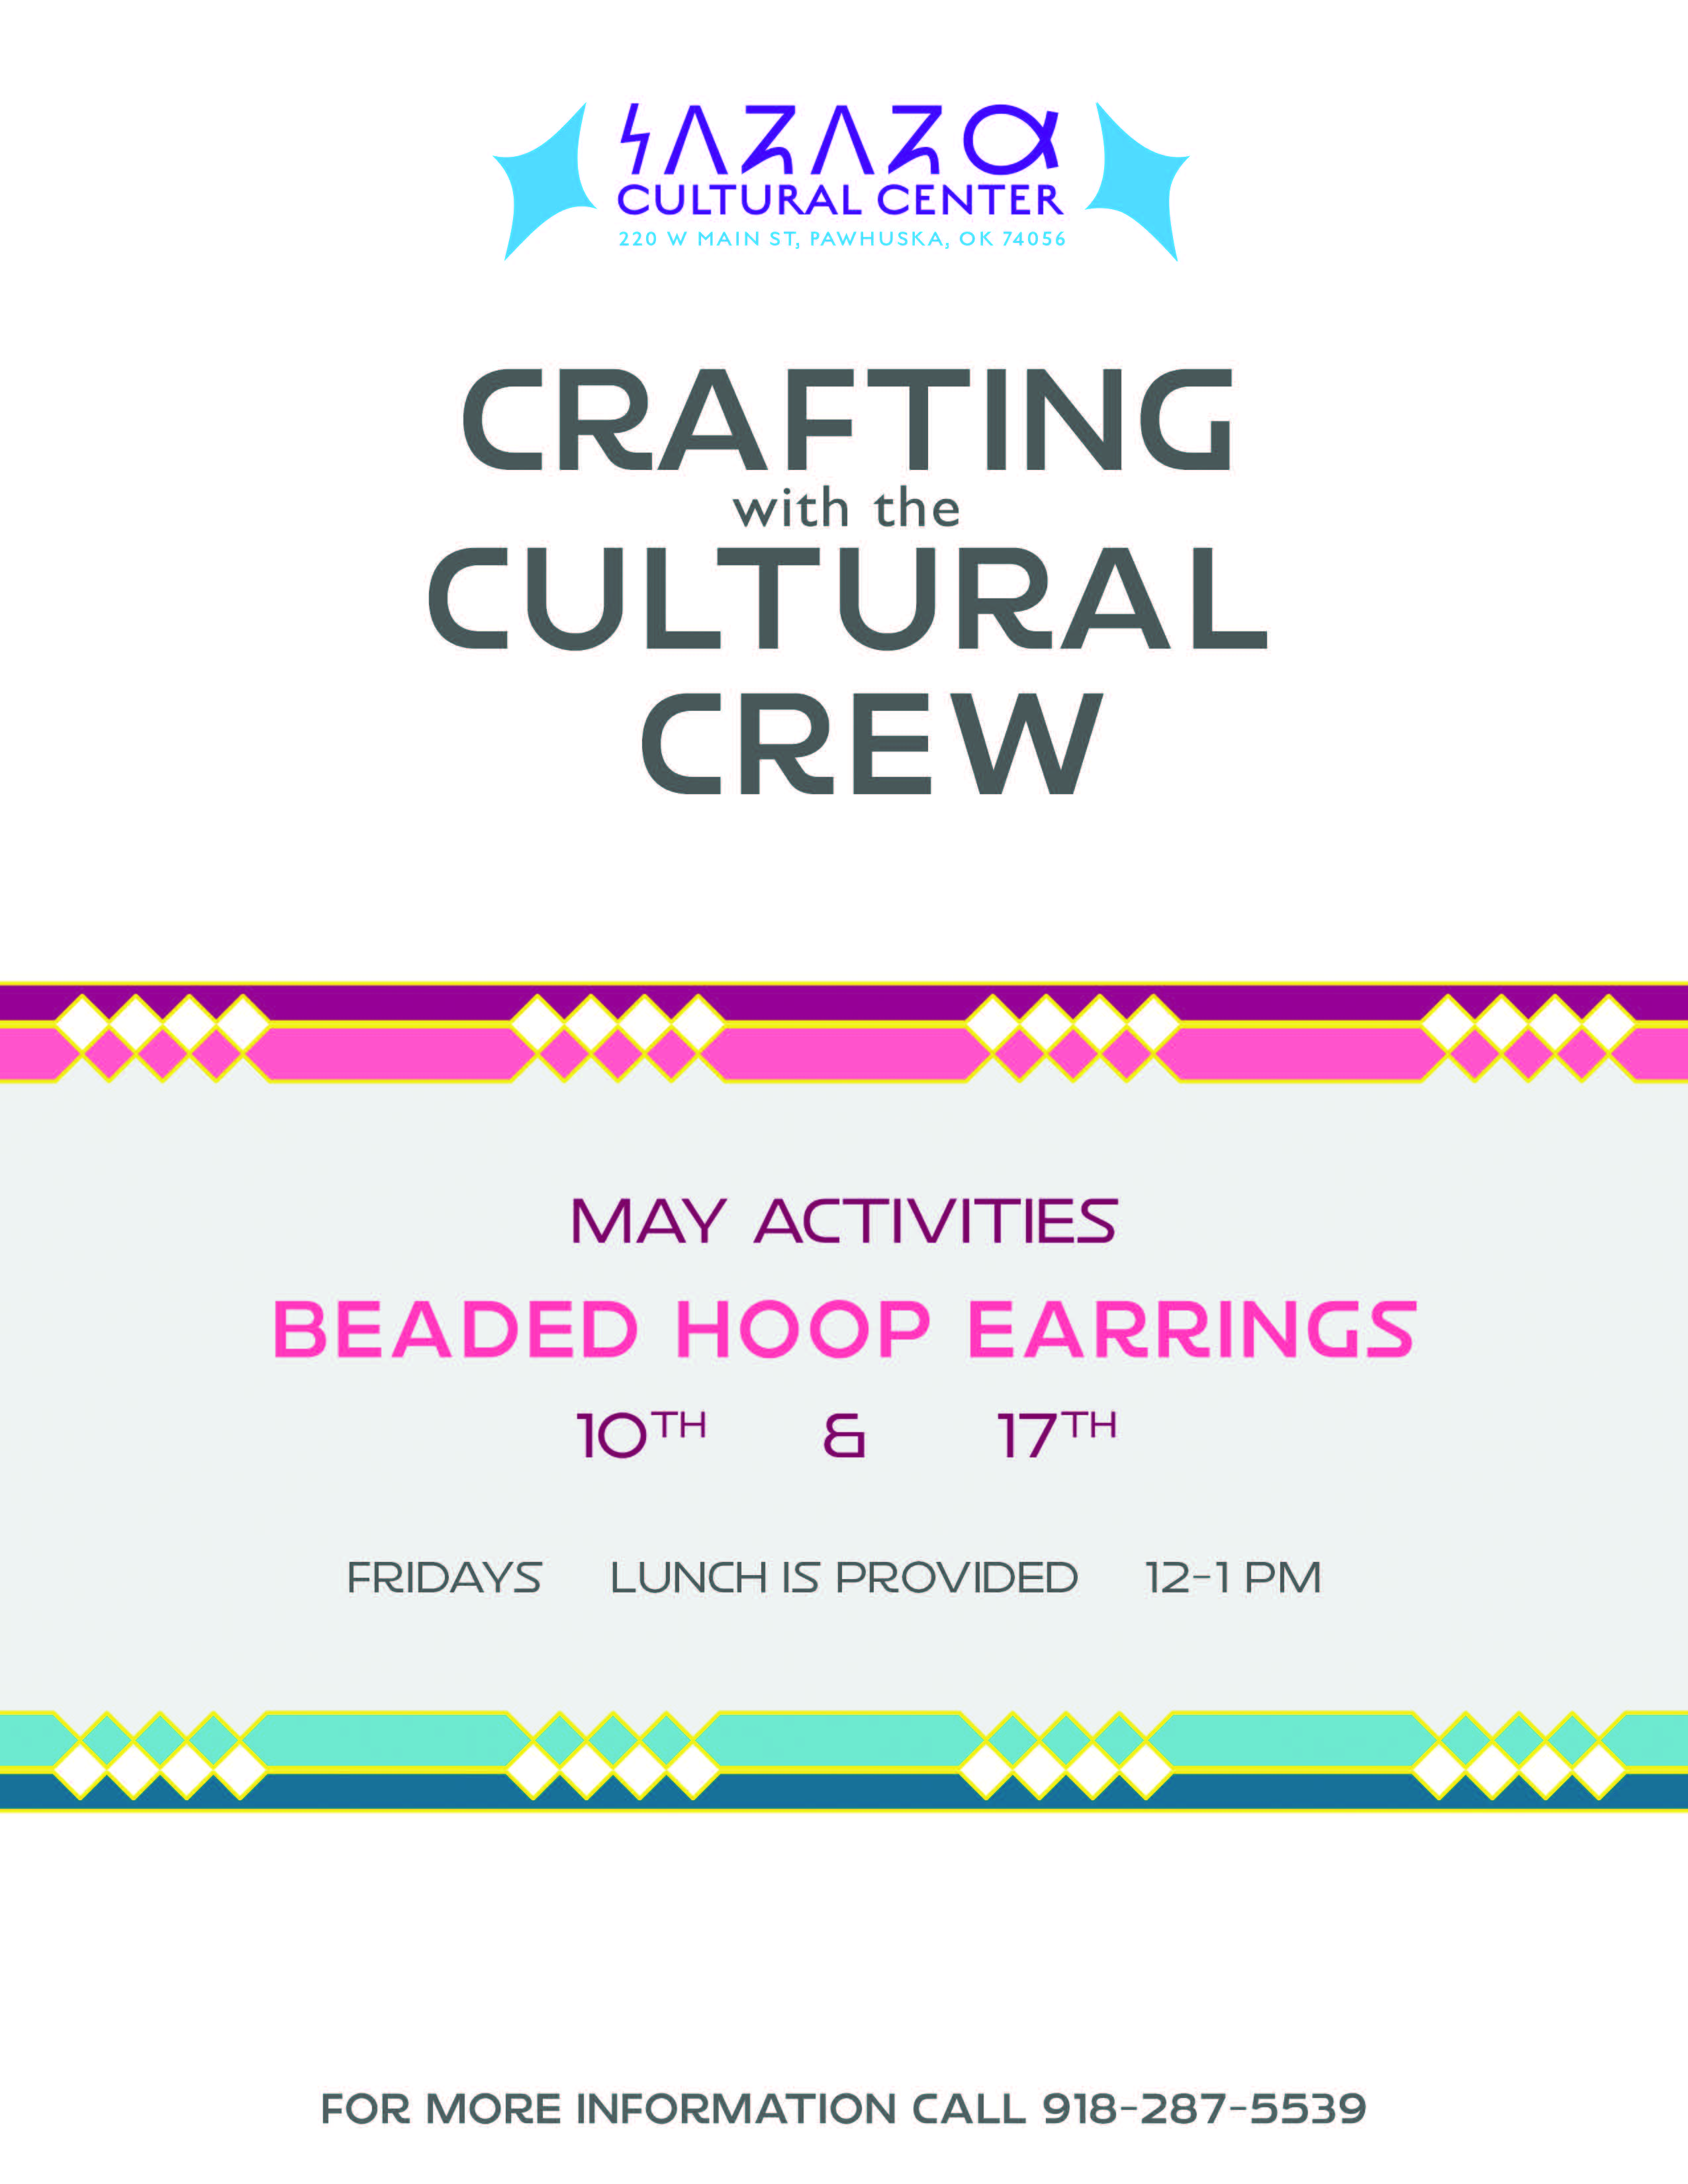 May Crafting with the Cultural Crew